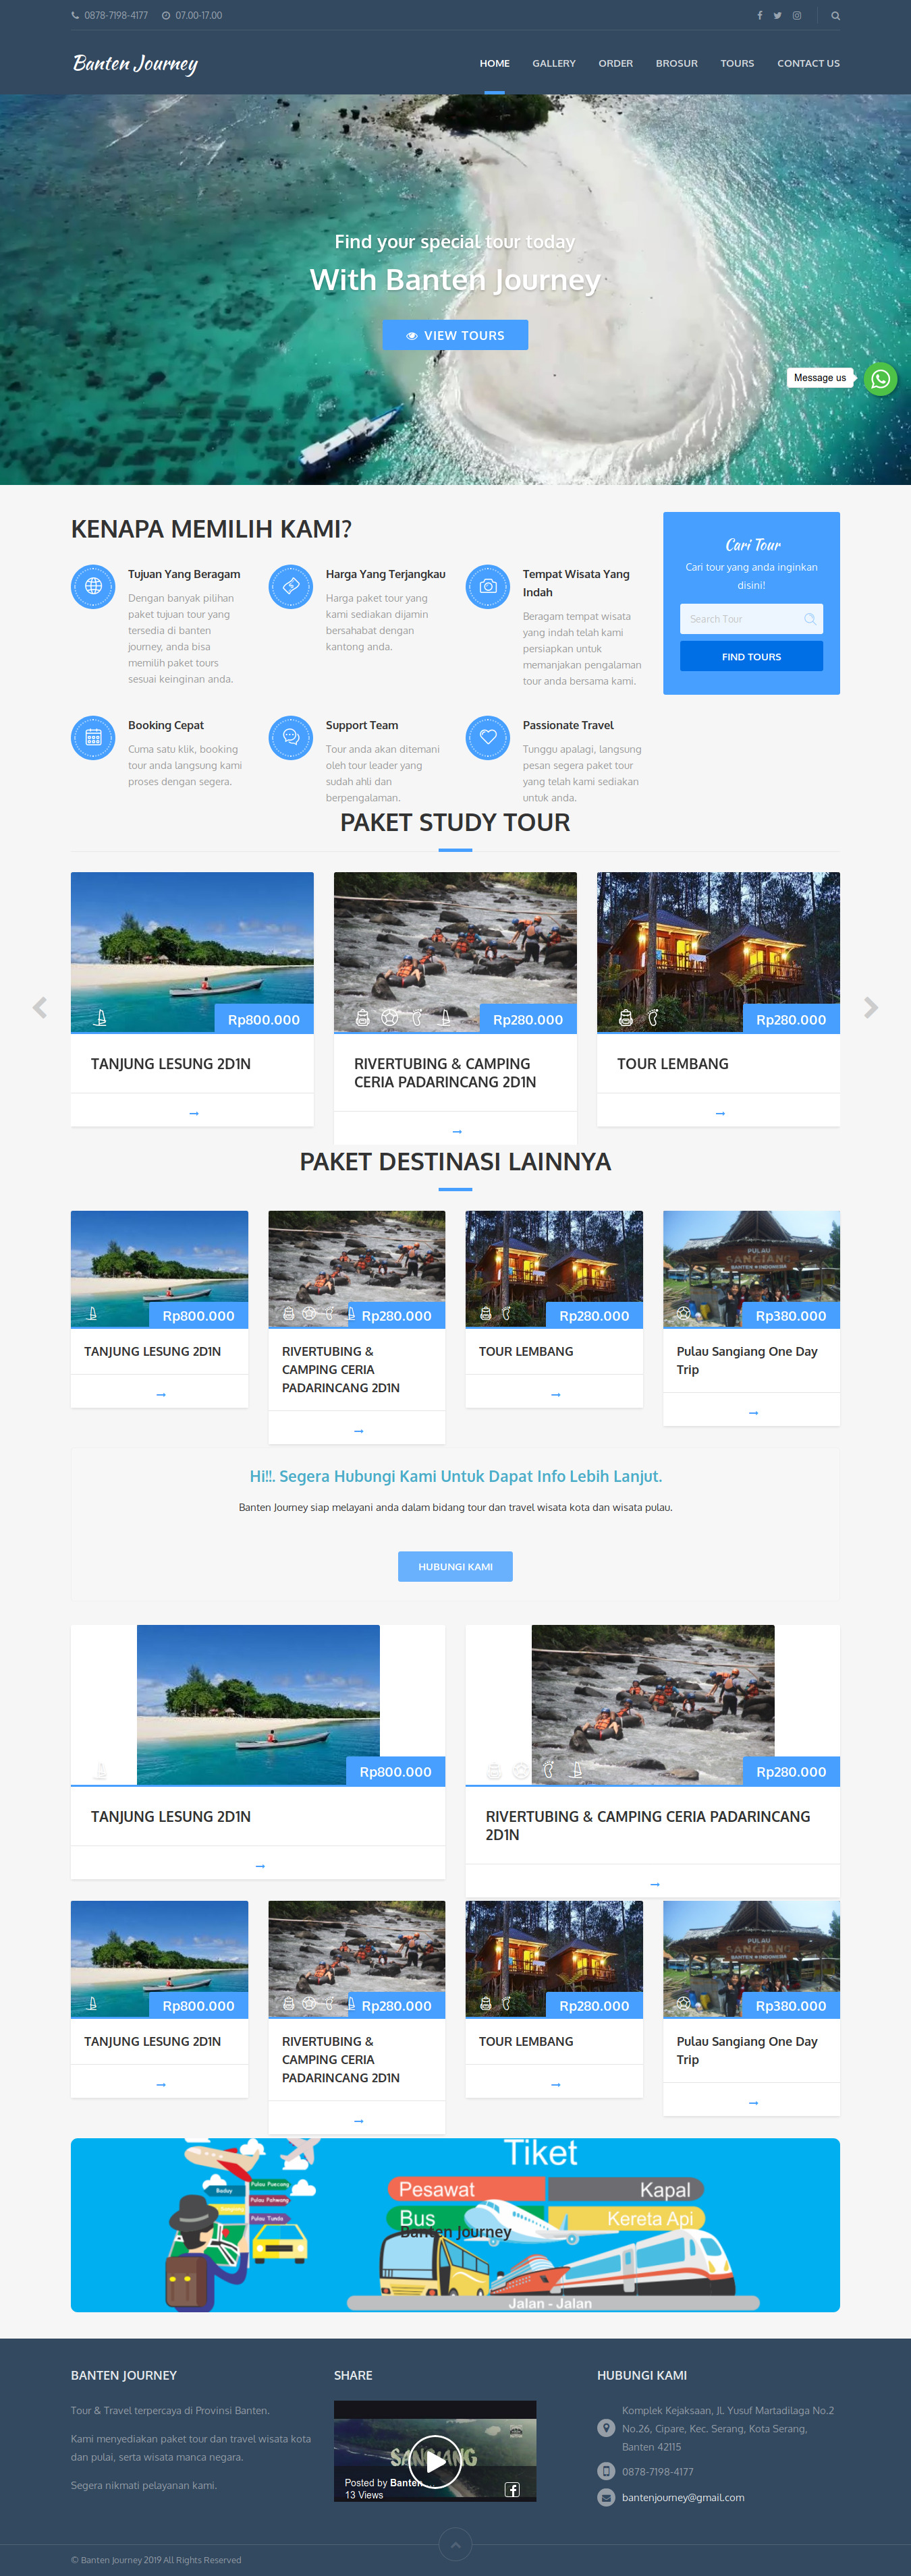 Screenshot_2019-06-18_Banten_Journey_–_Tour_And_Travel.jpg